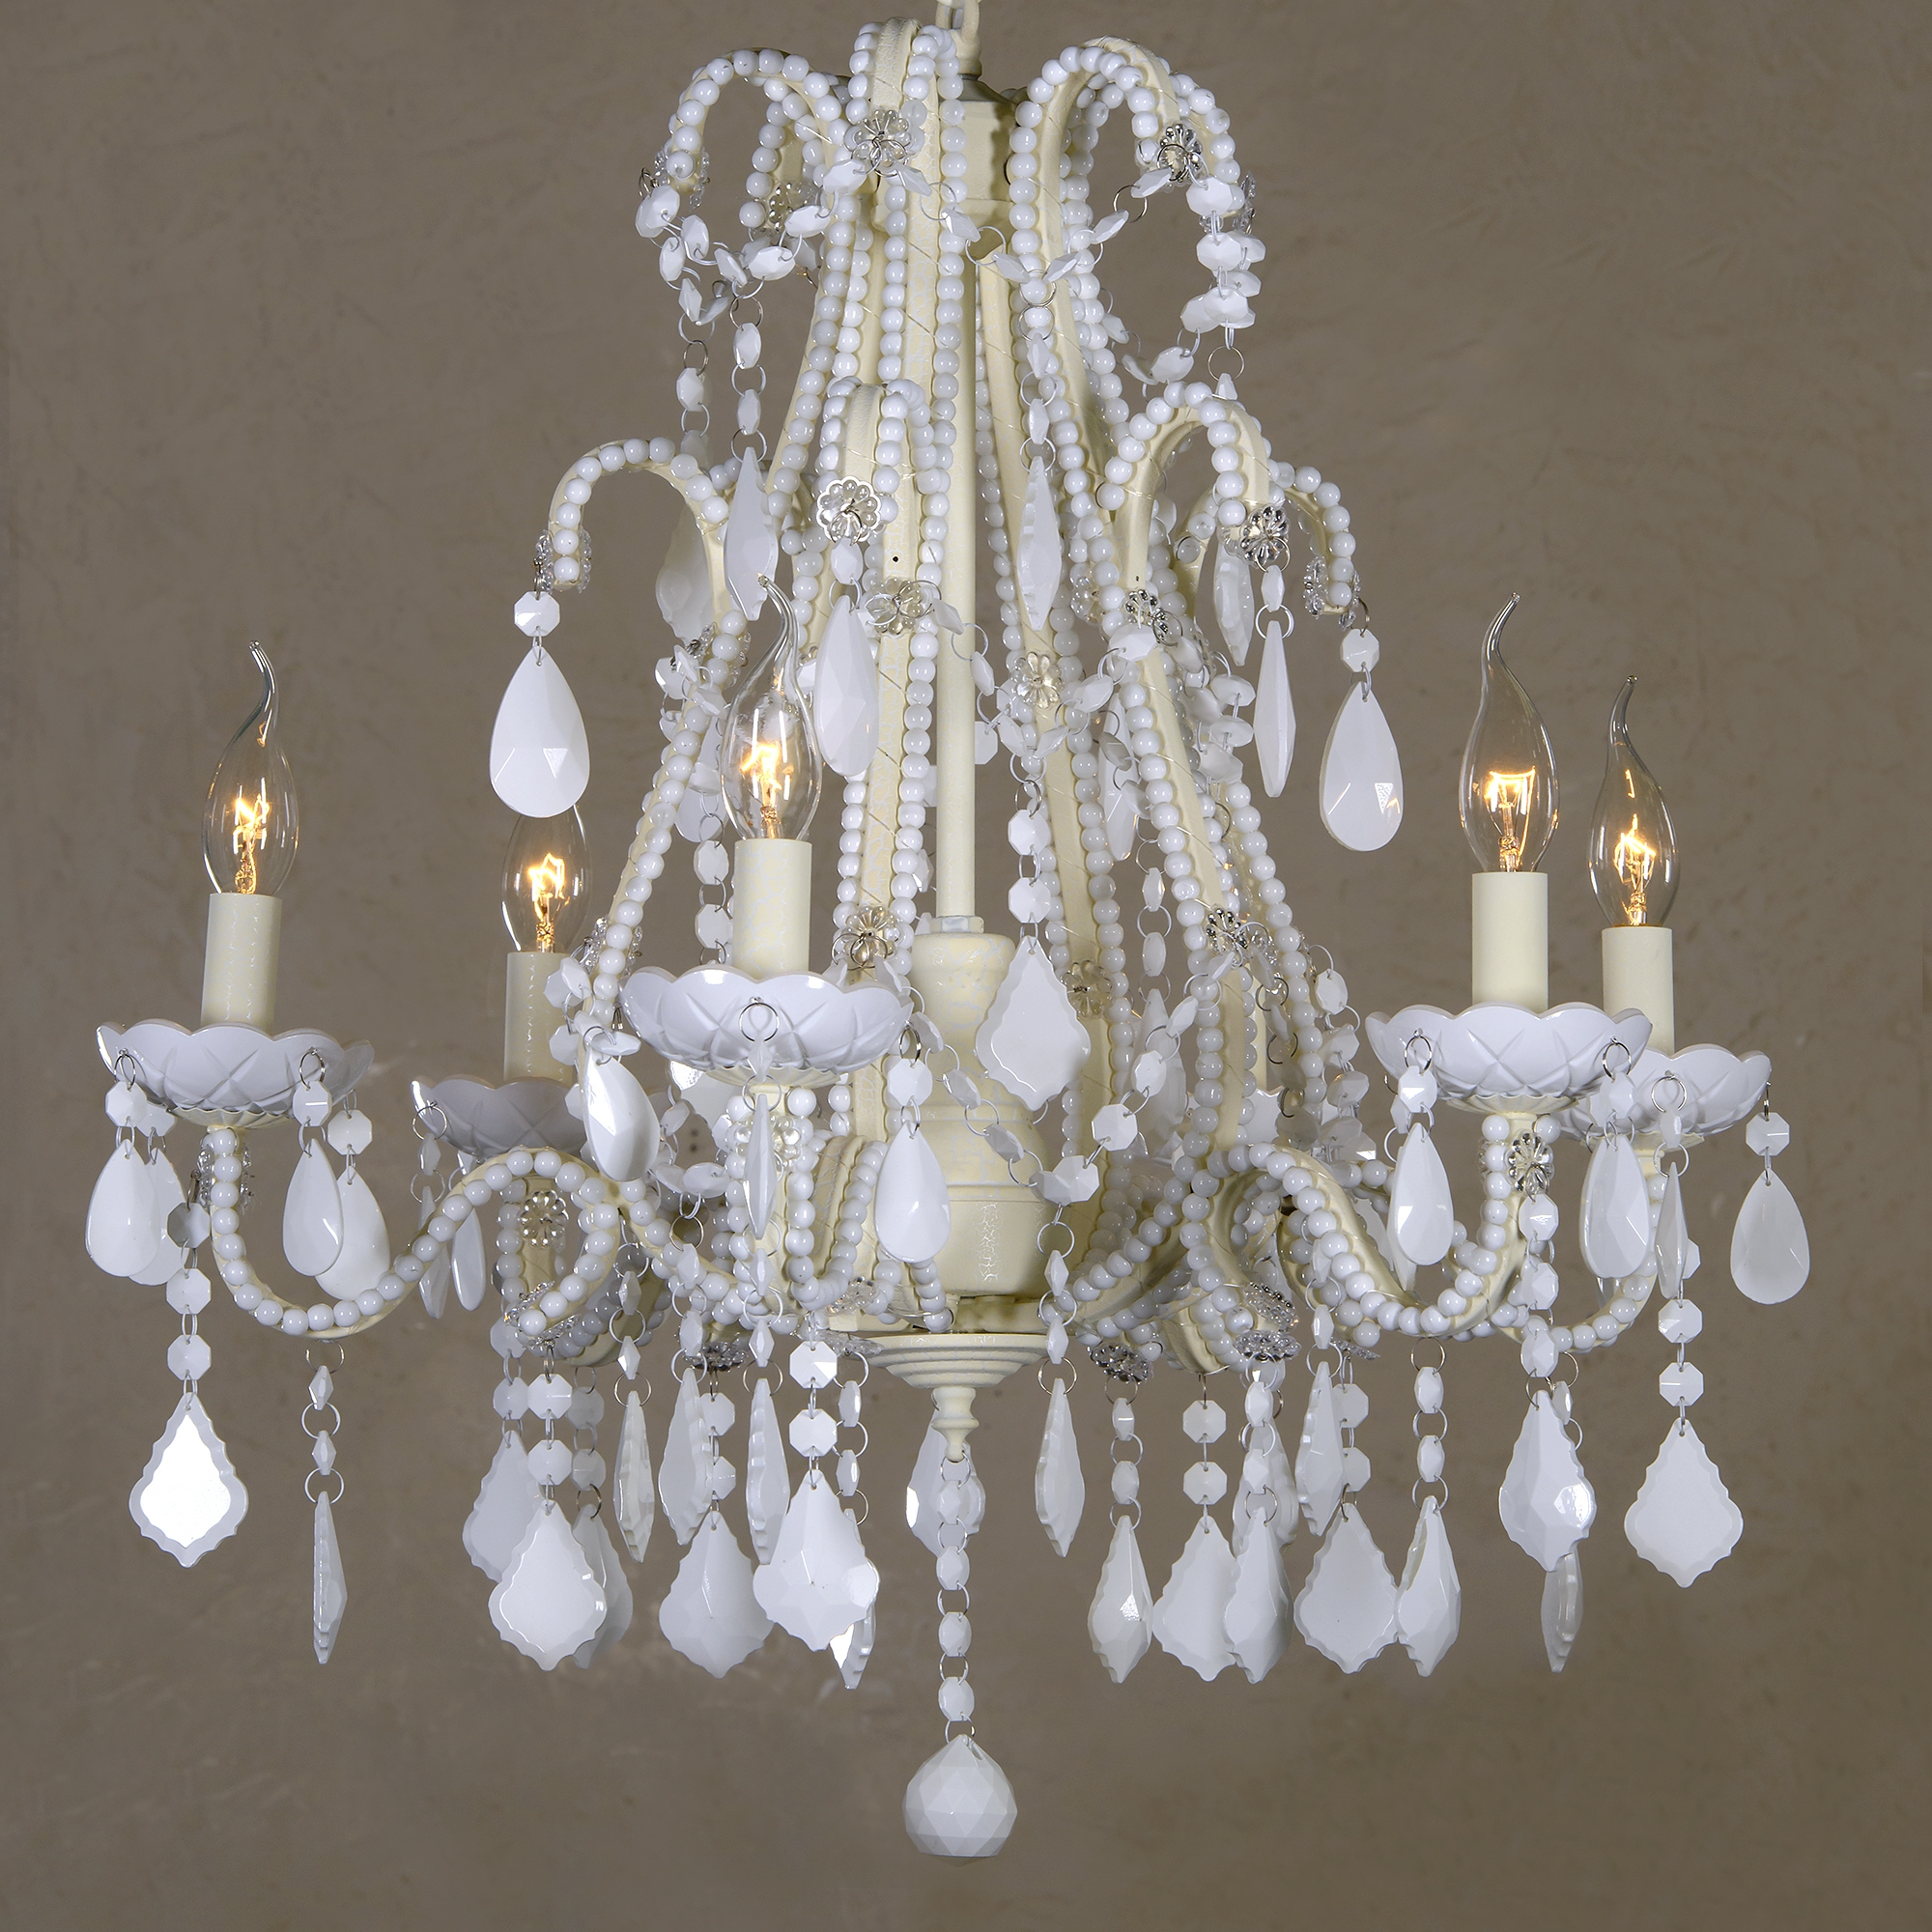 Marie Therese 6 Light Chandelier - Milky White